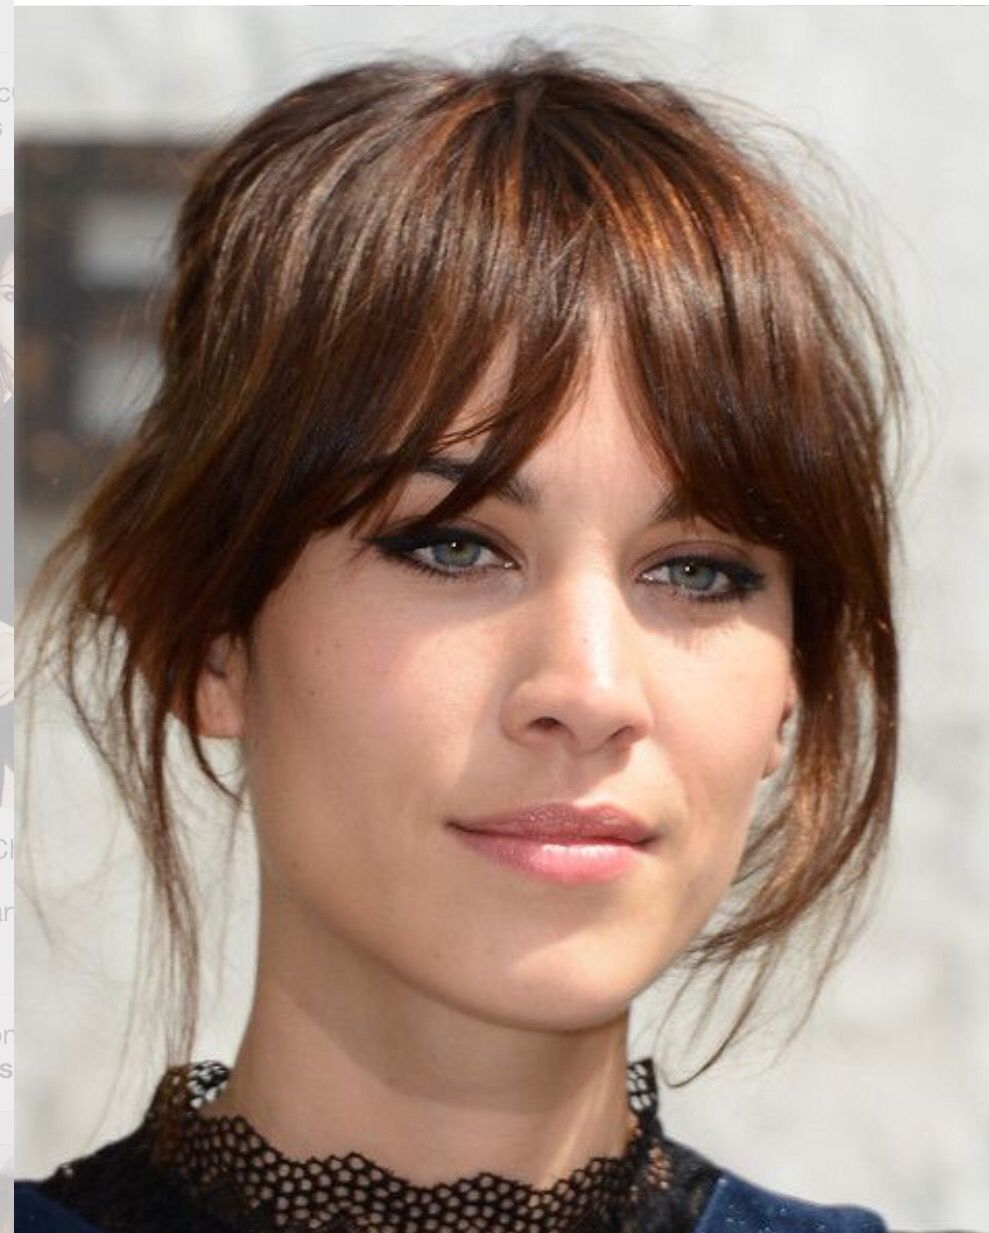 sparse whispy fringe, cut lash length and tapered to cheekbone